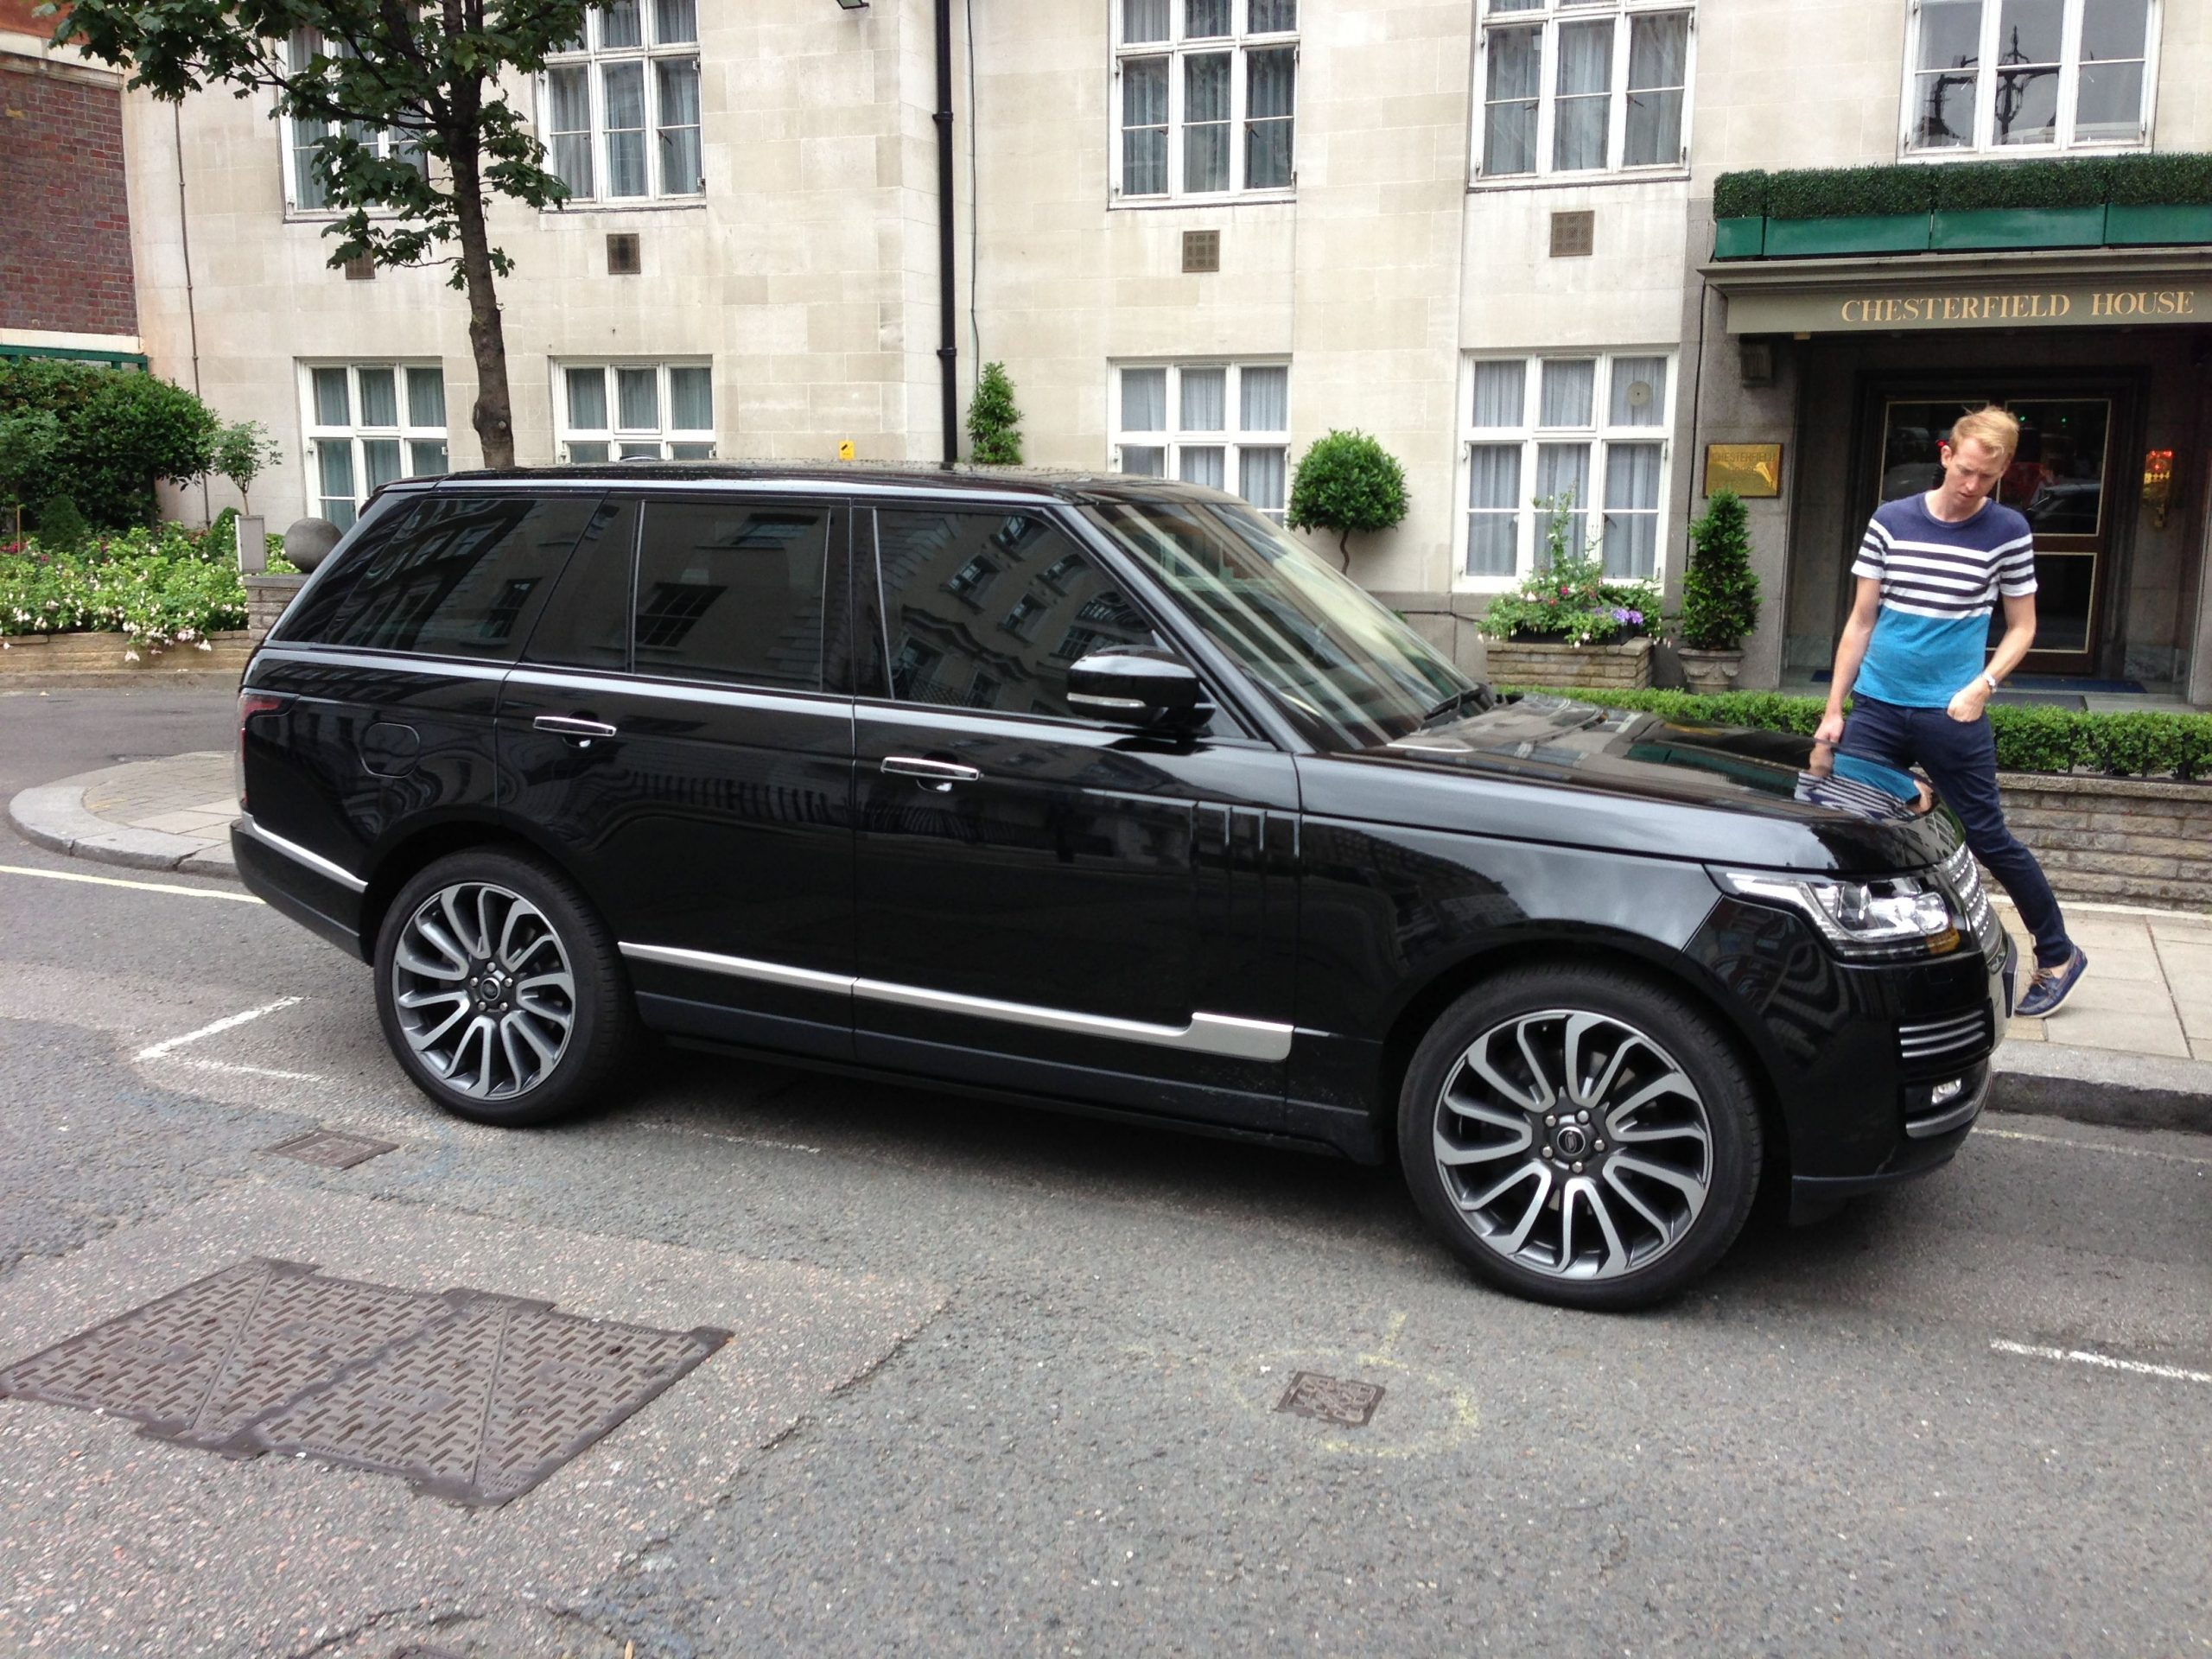 New Vogue Range Rover 2013 – YES PLEASE!